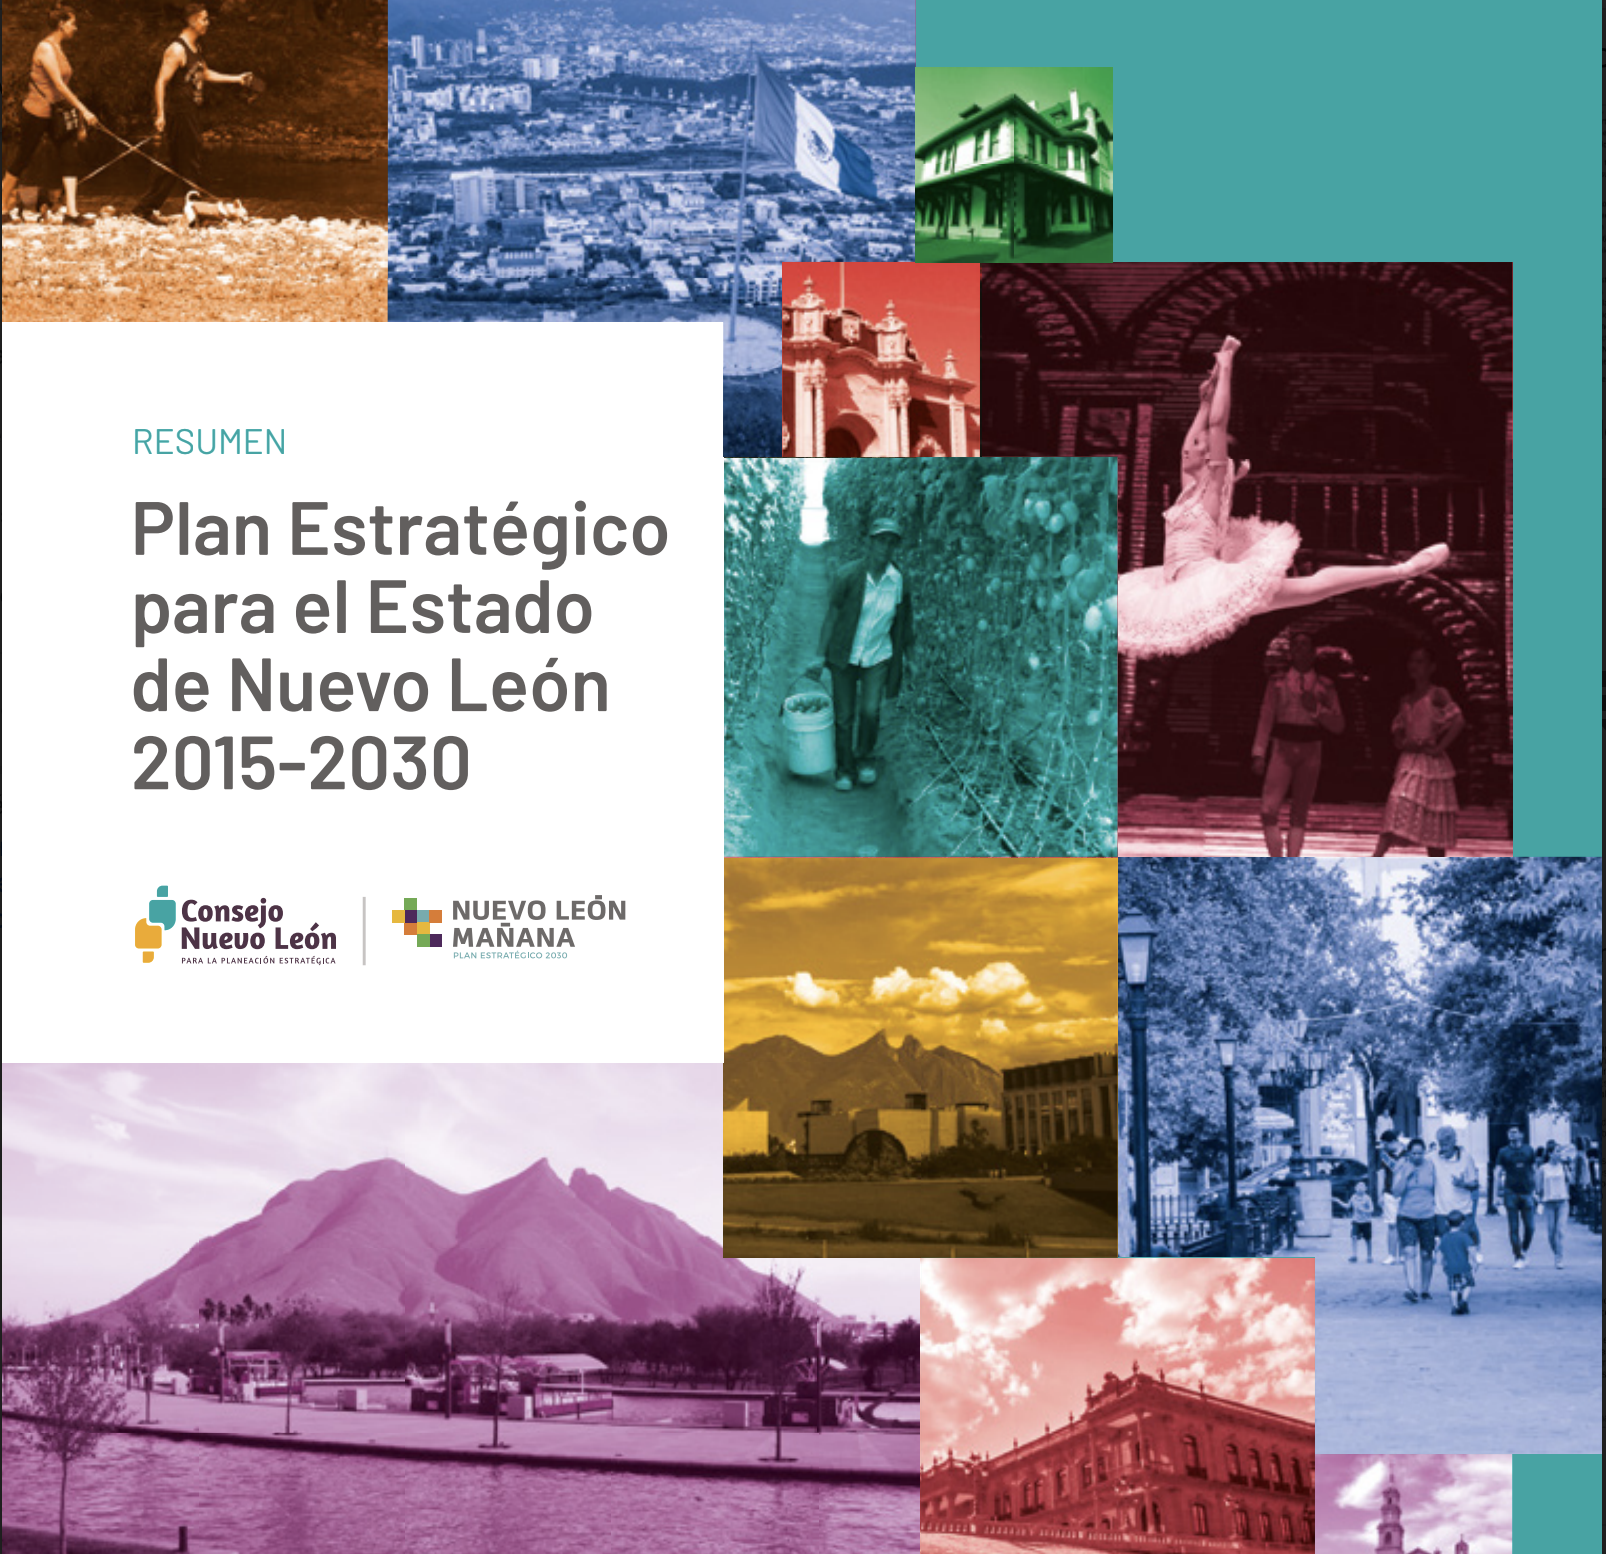 Online public consultation for the revision of the Strategic Plan of the State of Nuevo León